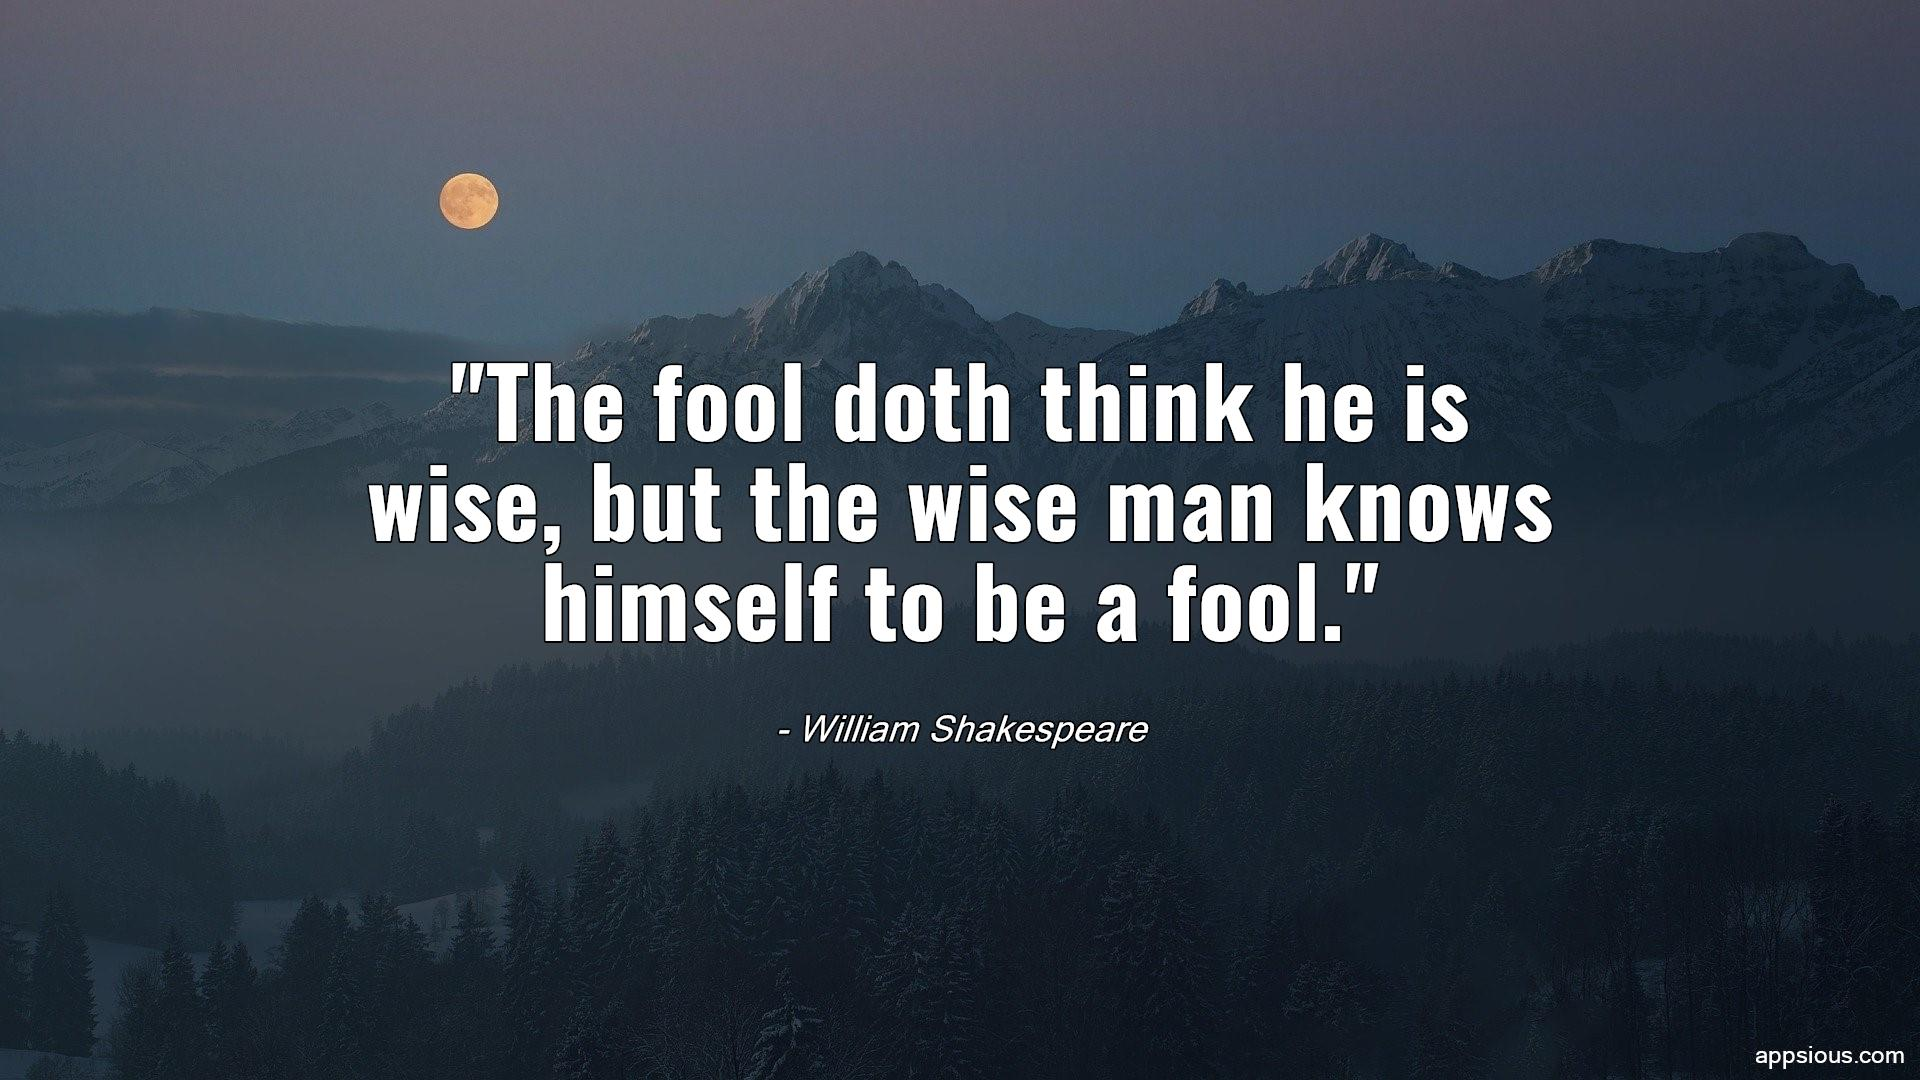 The fool doth think he is wise, but the wise man knows himself to be a fool.